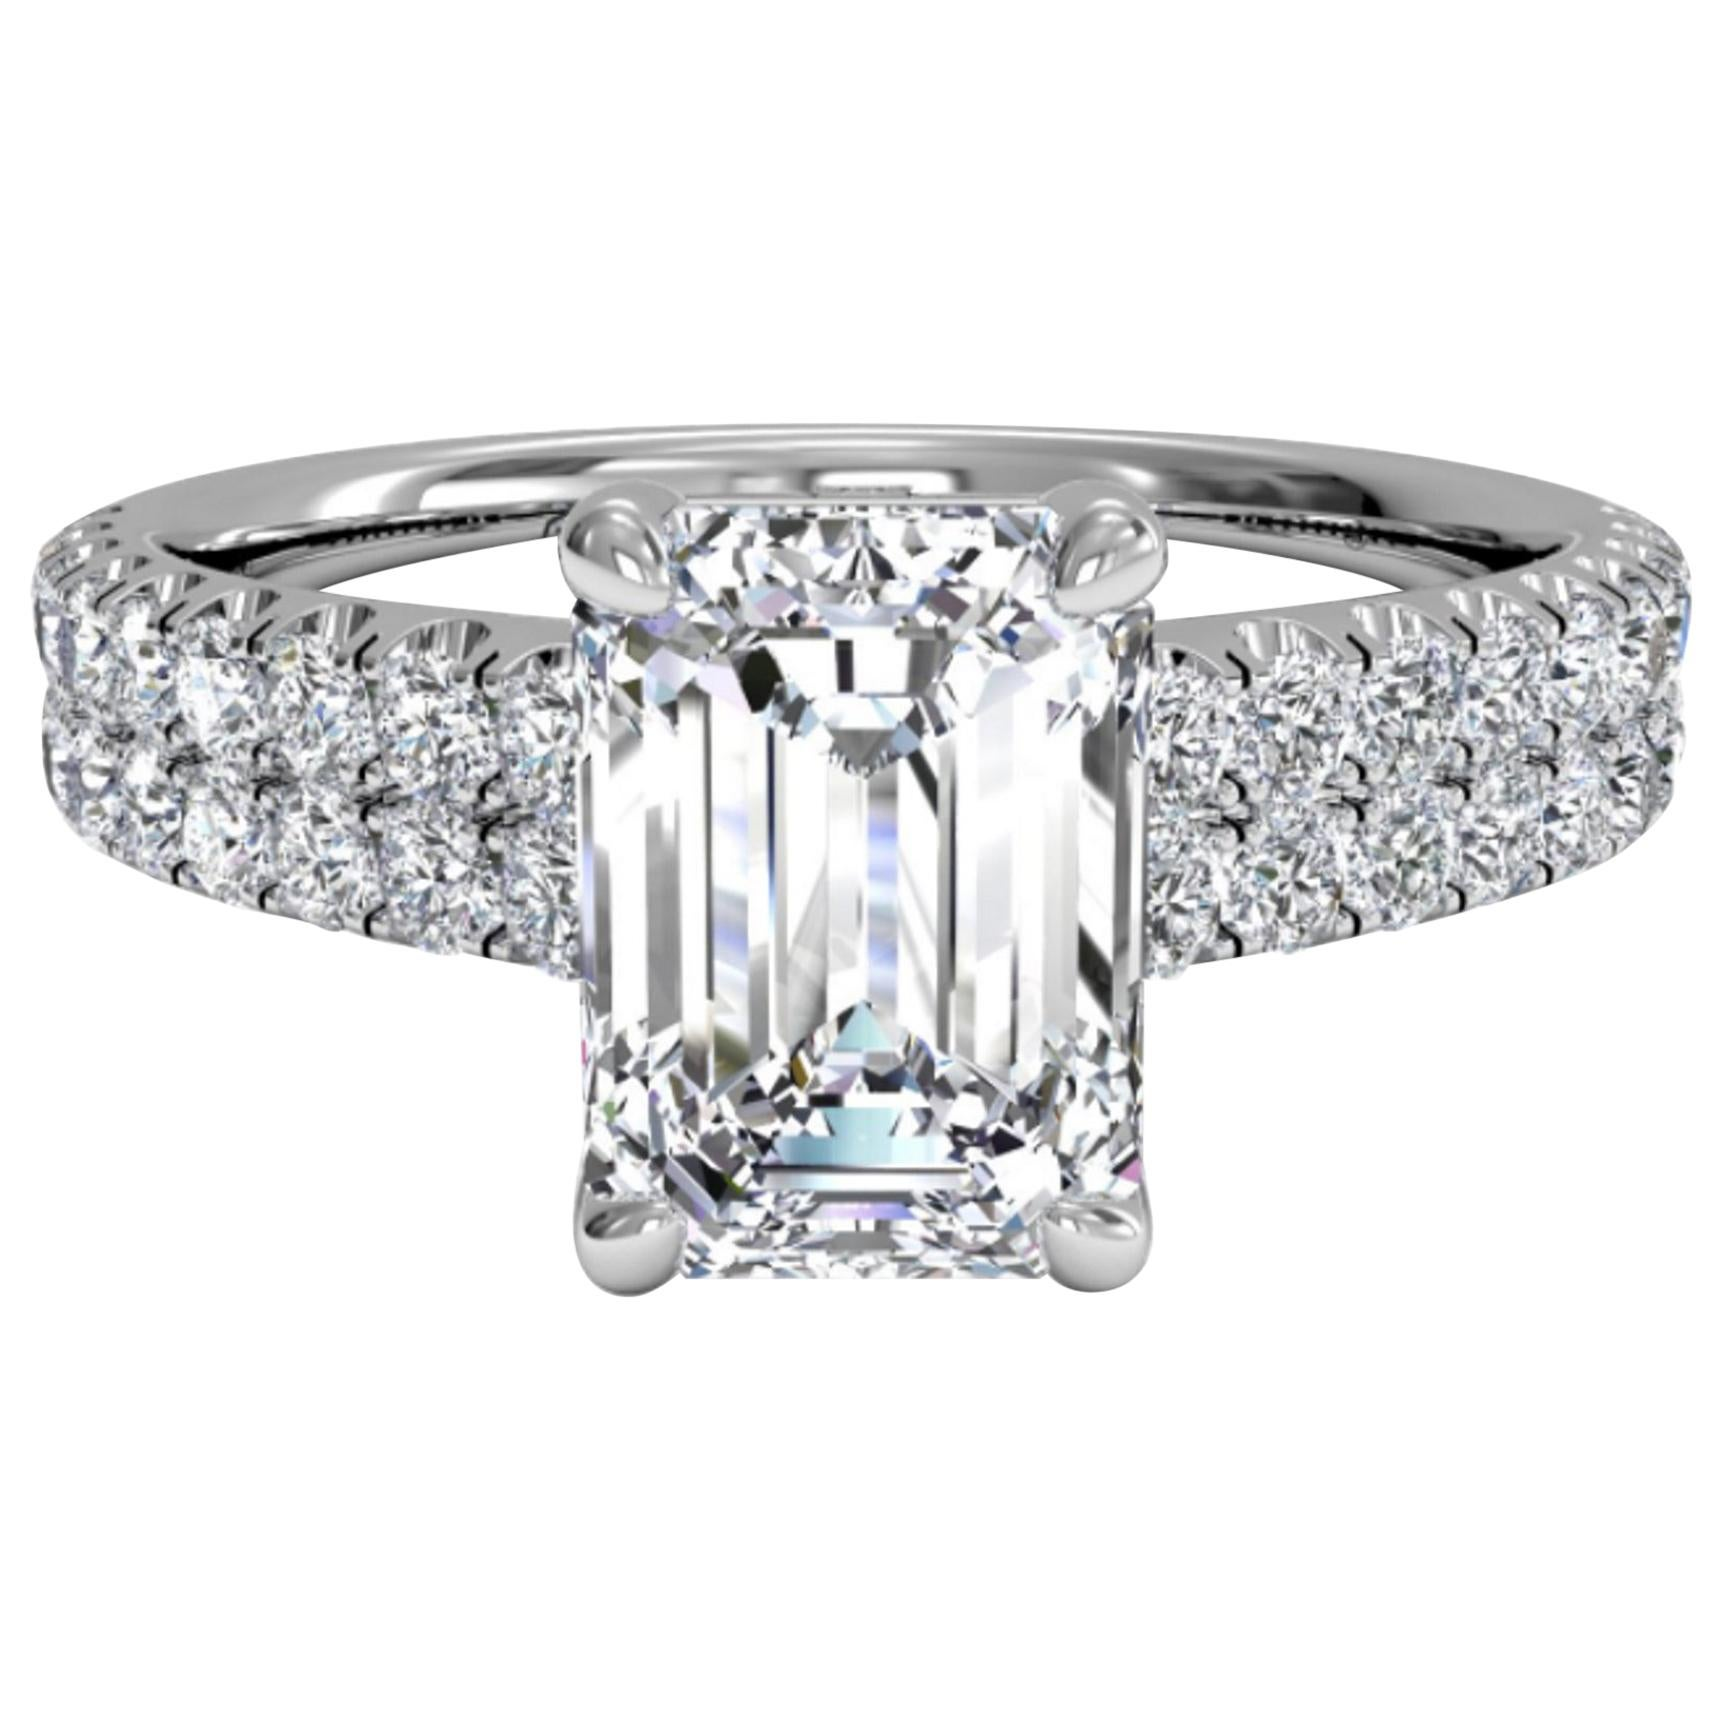 GIA Certified 3 Carat Emerald Cut Diamond Pave Ring VVS1 Clarity G Color